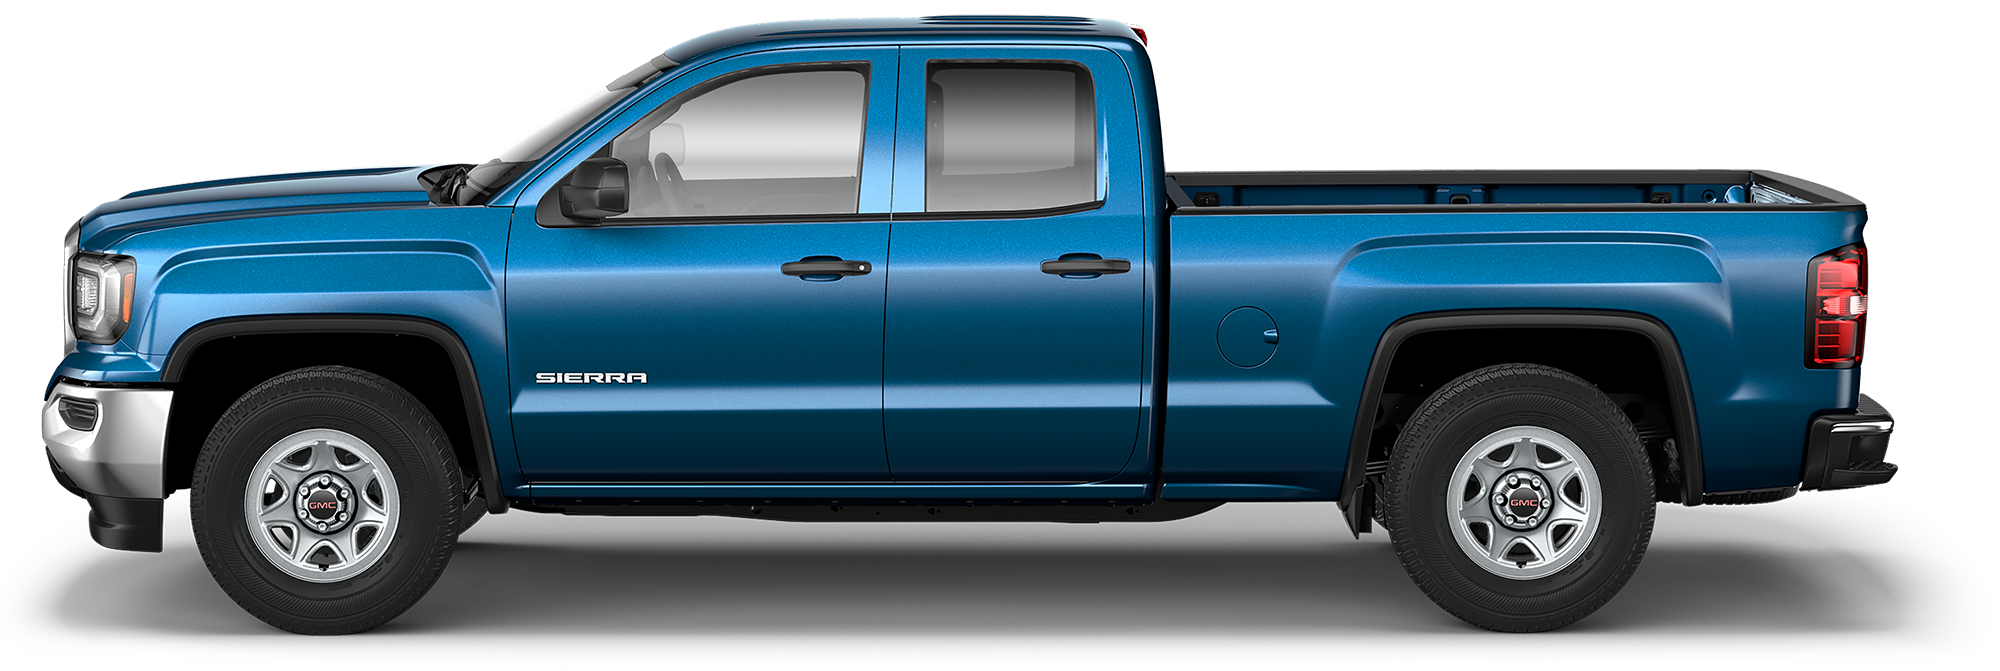 2019 GMC Sierra 1500 Limited Camion de base